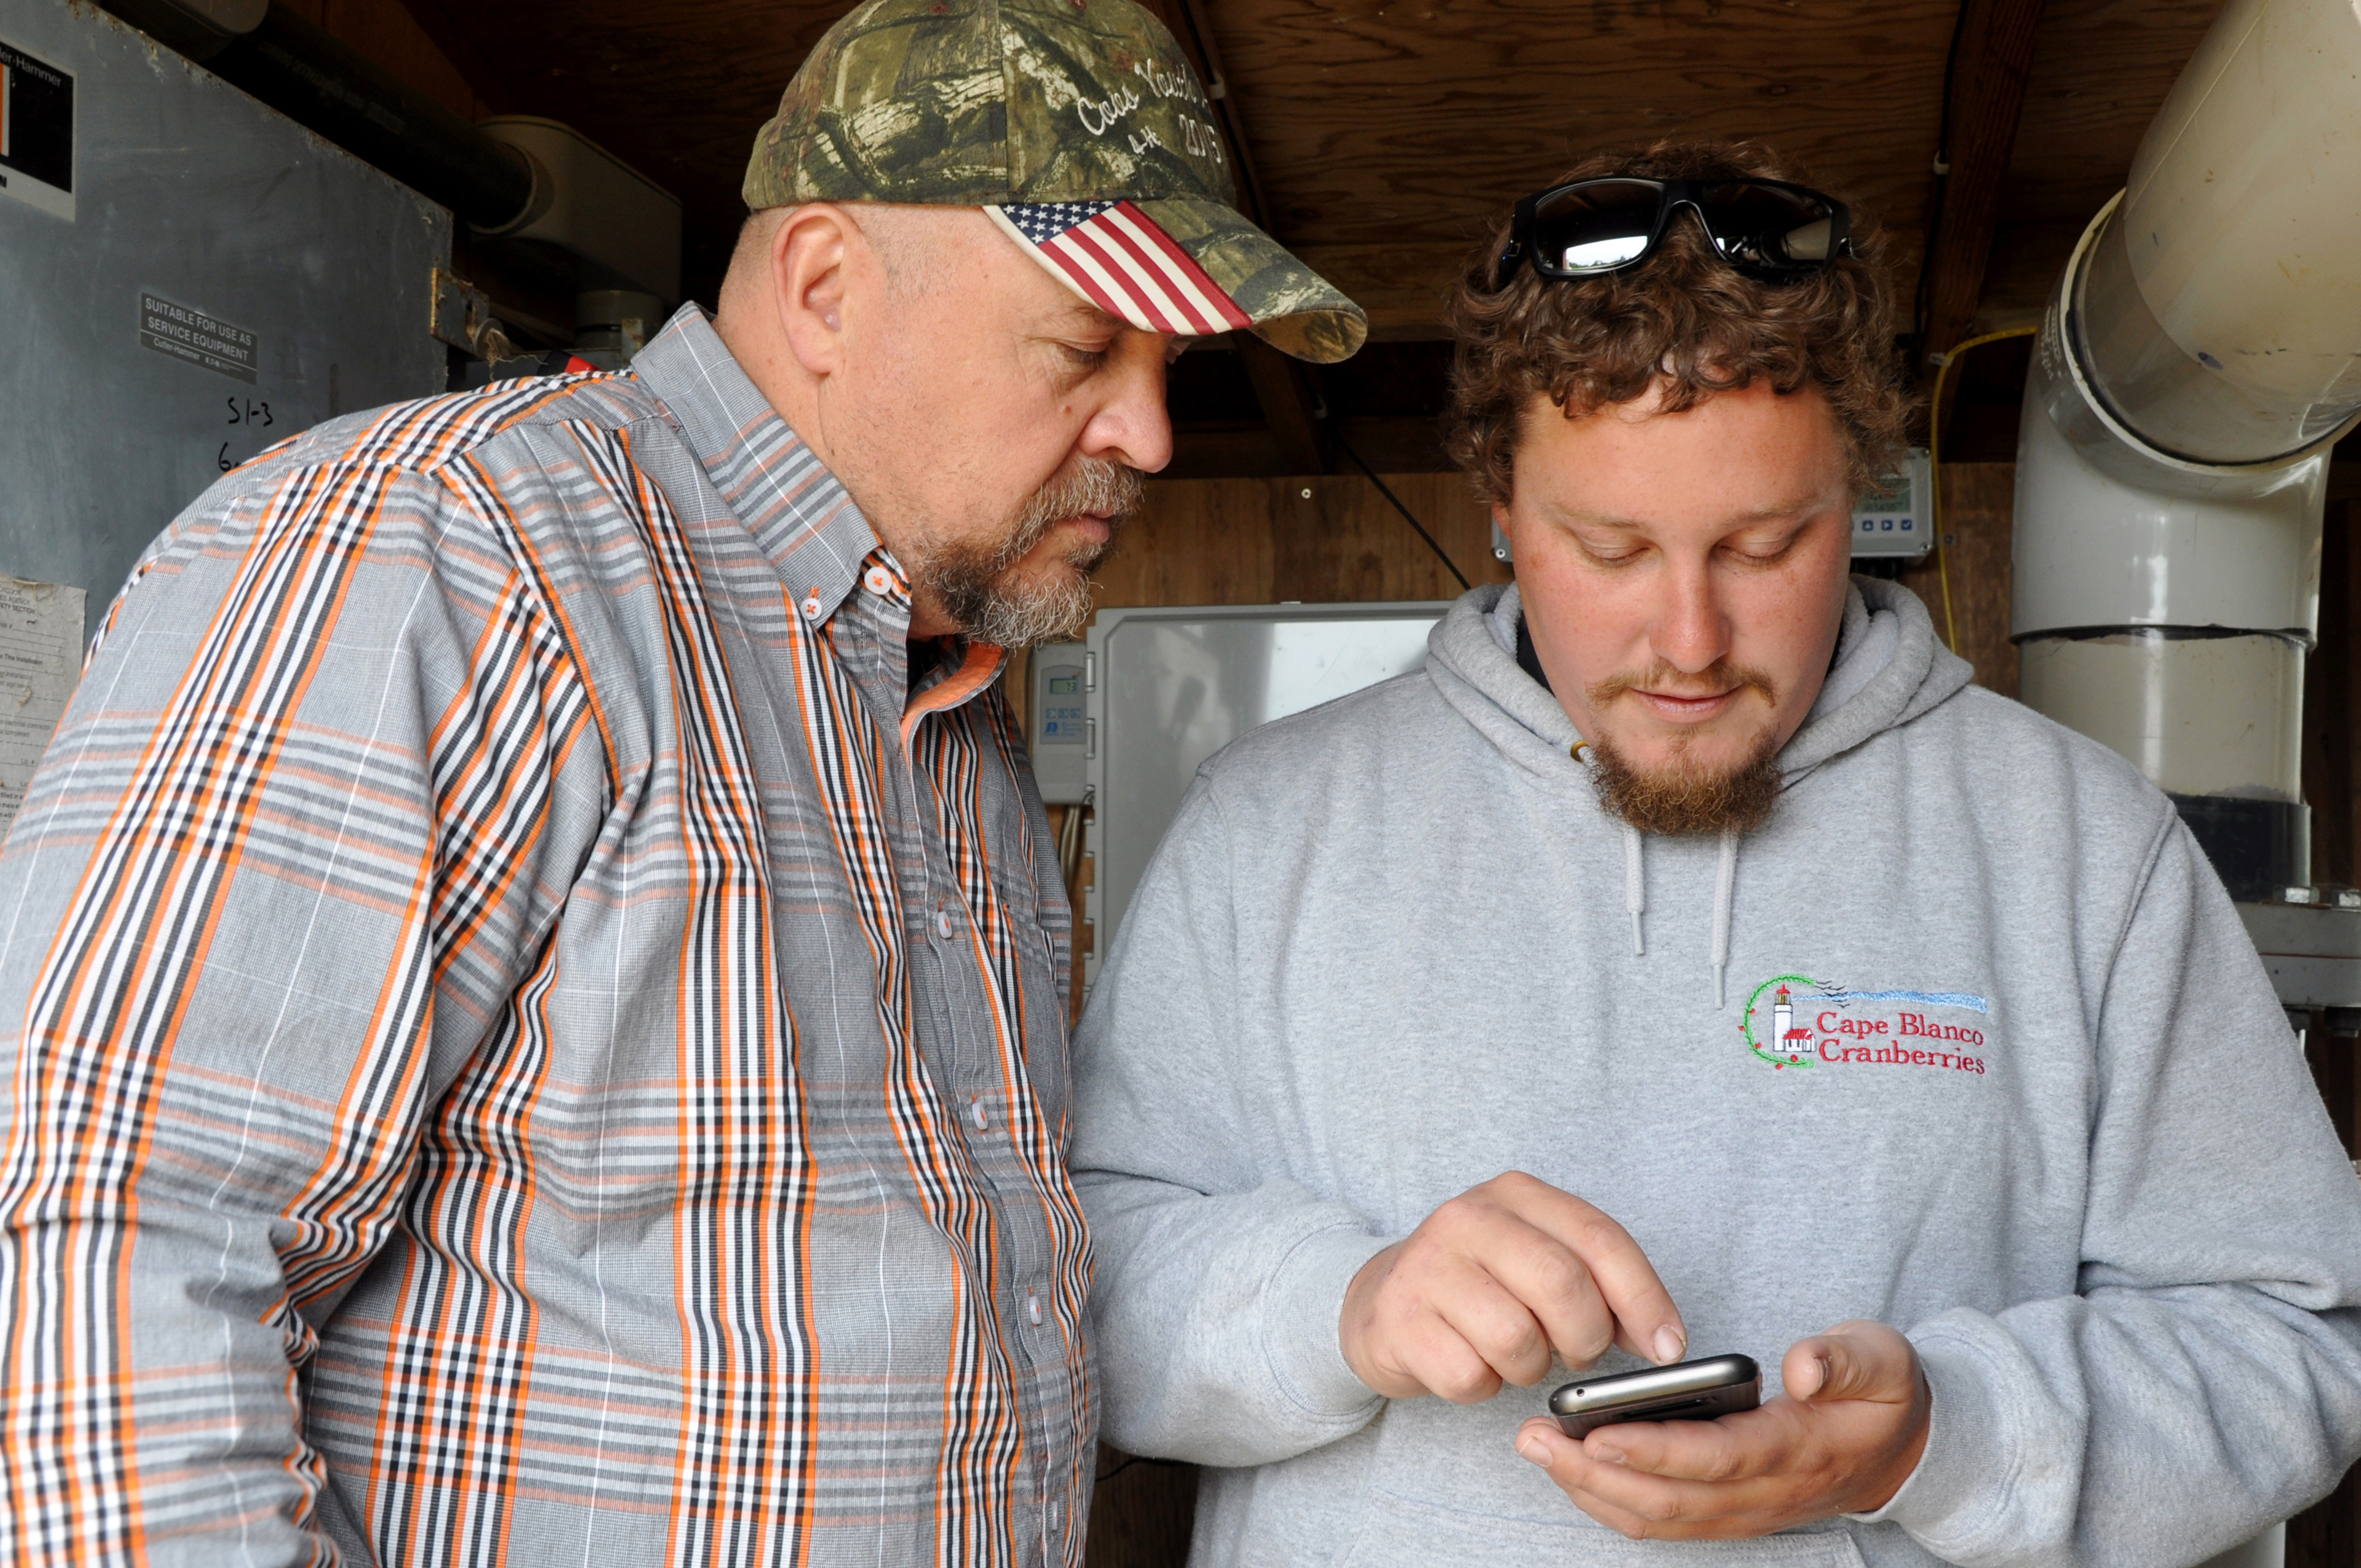 Nick shows Eric how easy it is to control his automated irrigation system with a few swipes on his smartphone.